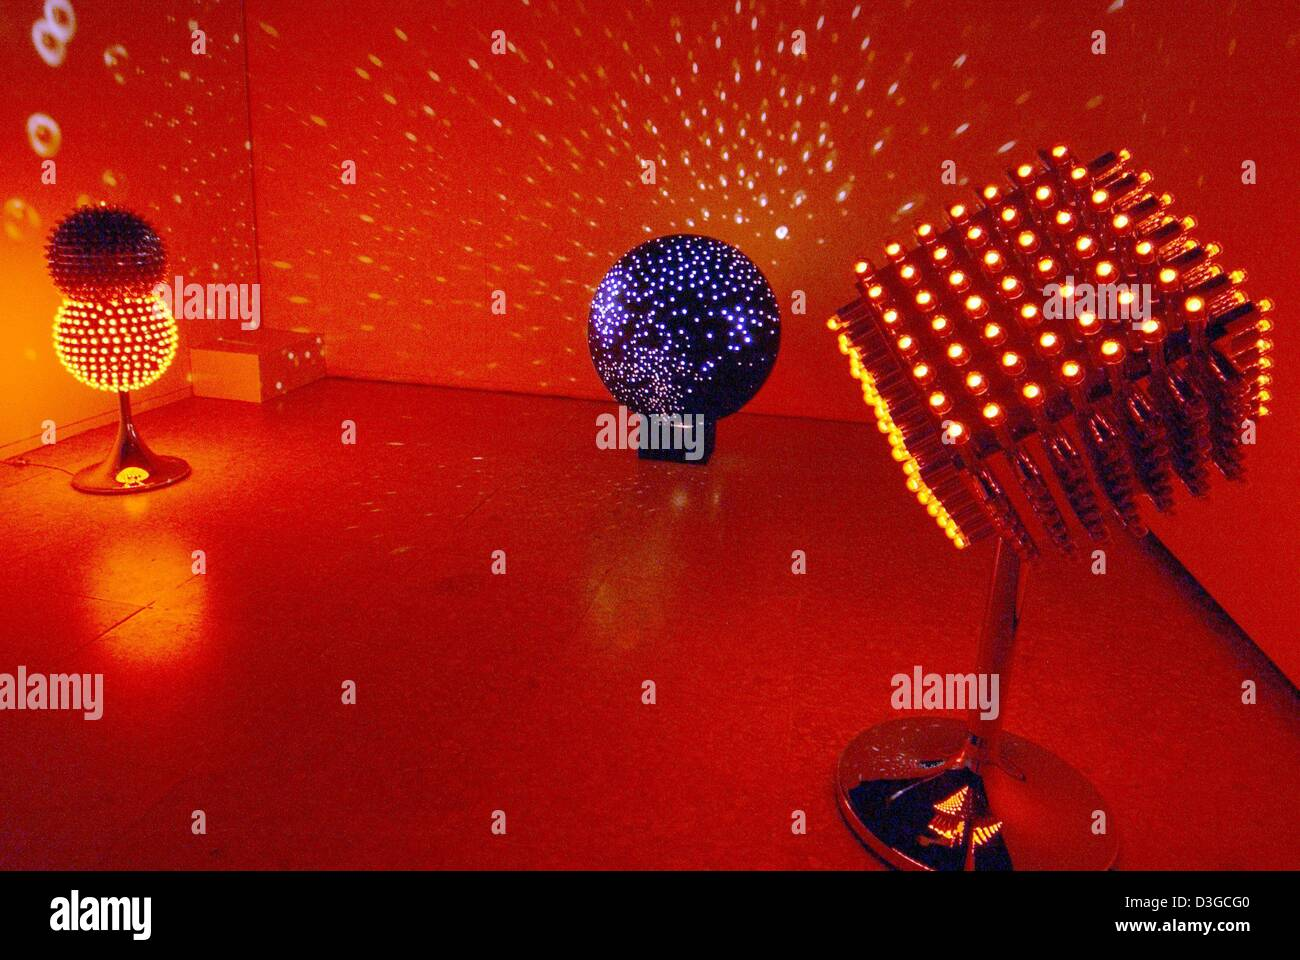 (dpa) - A view into a light room, on display during the 'Lichtkunst' (light art) exhibition at the Wilhelm - Stock Image